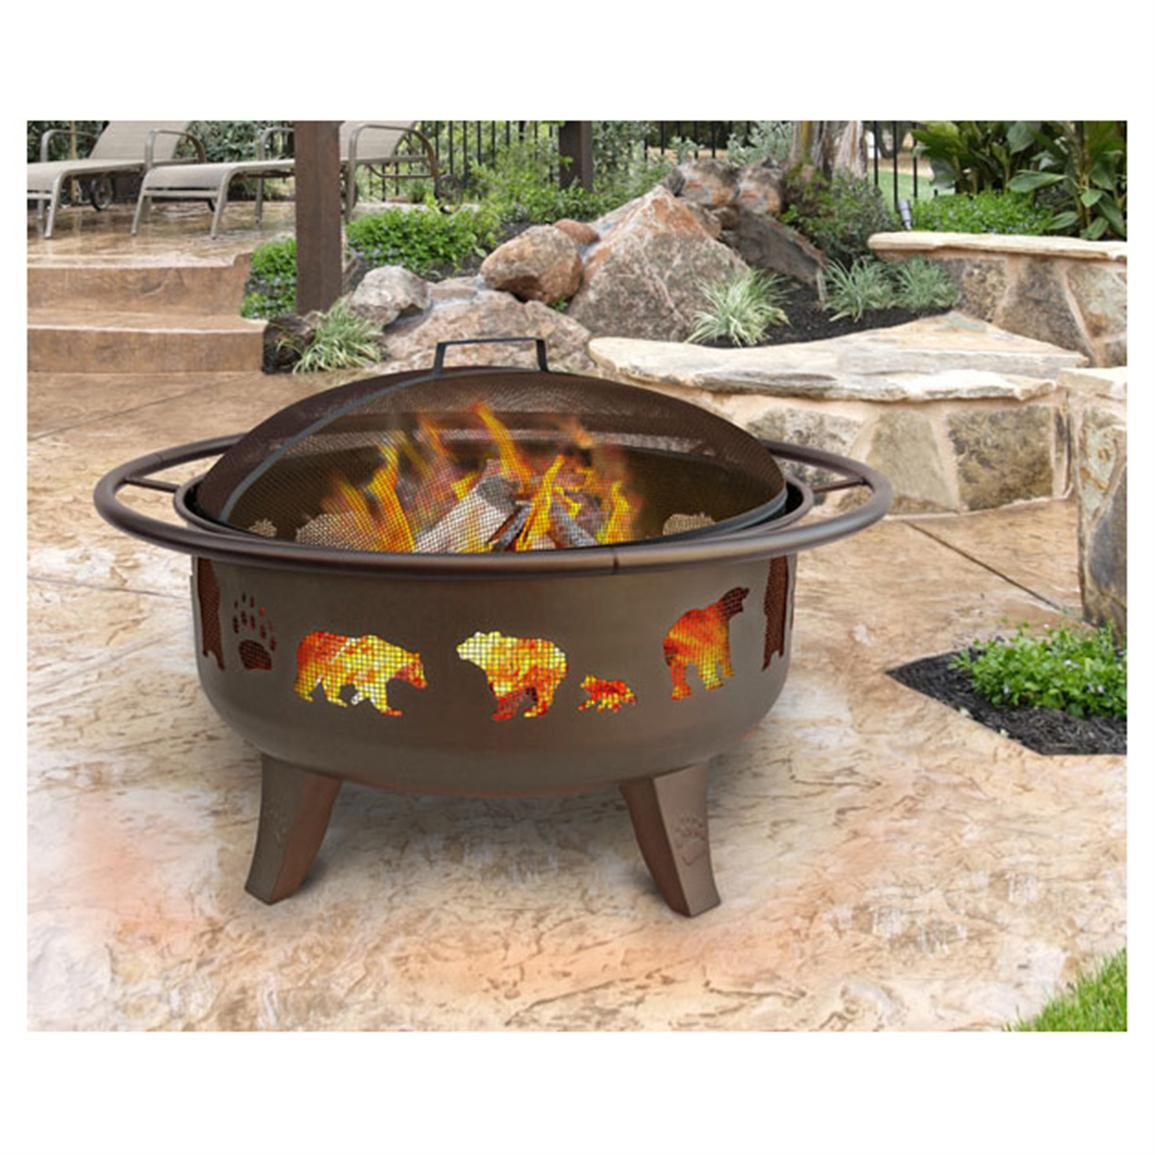 30 Fire Pit Grate